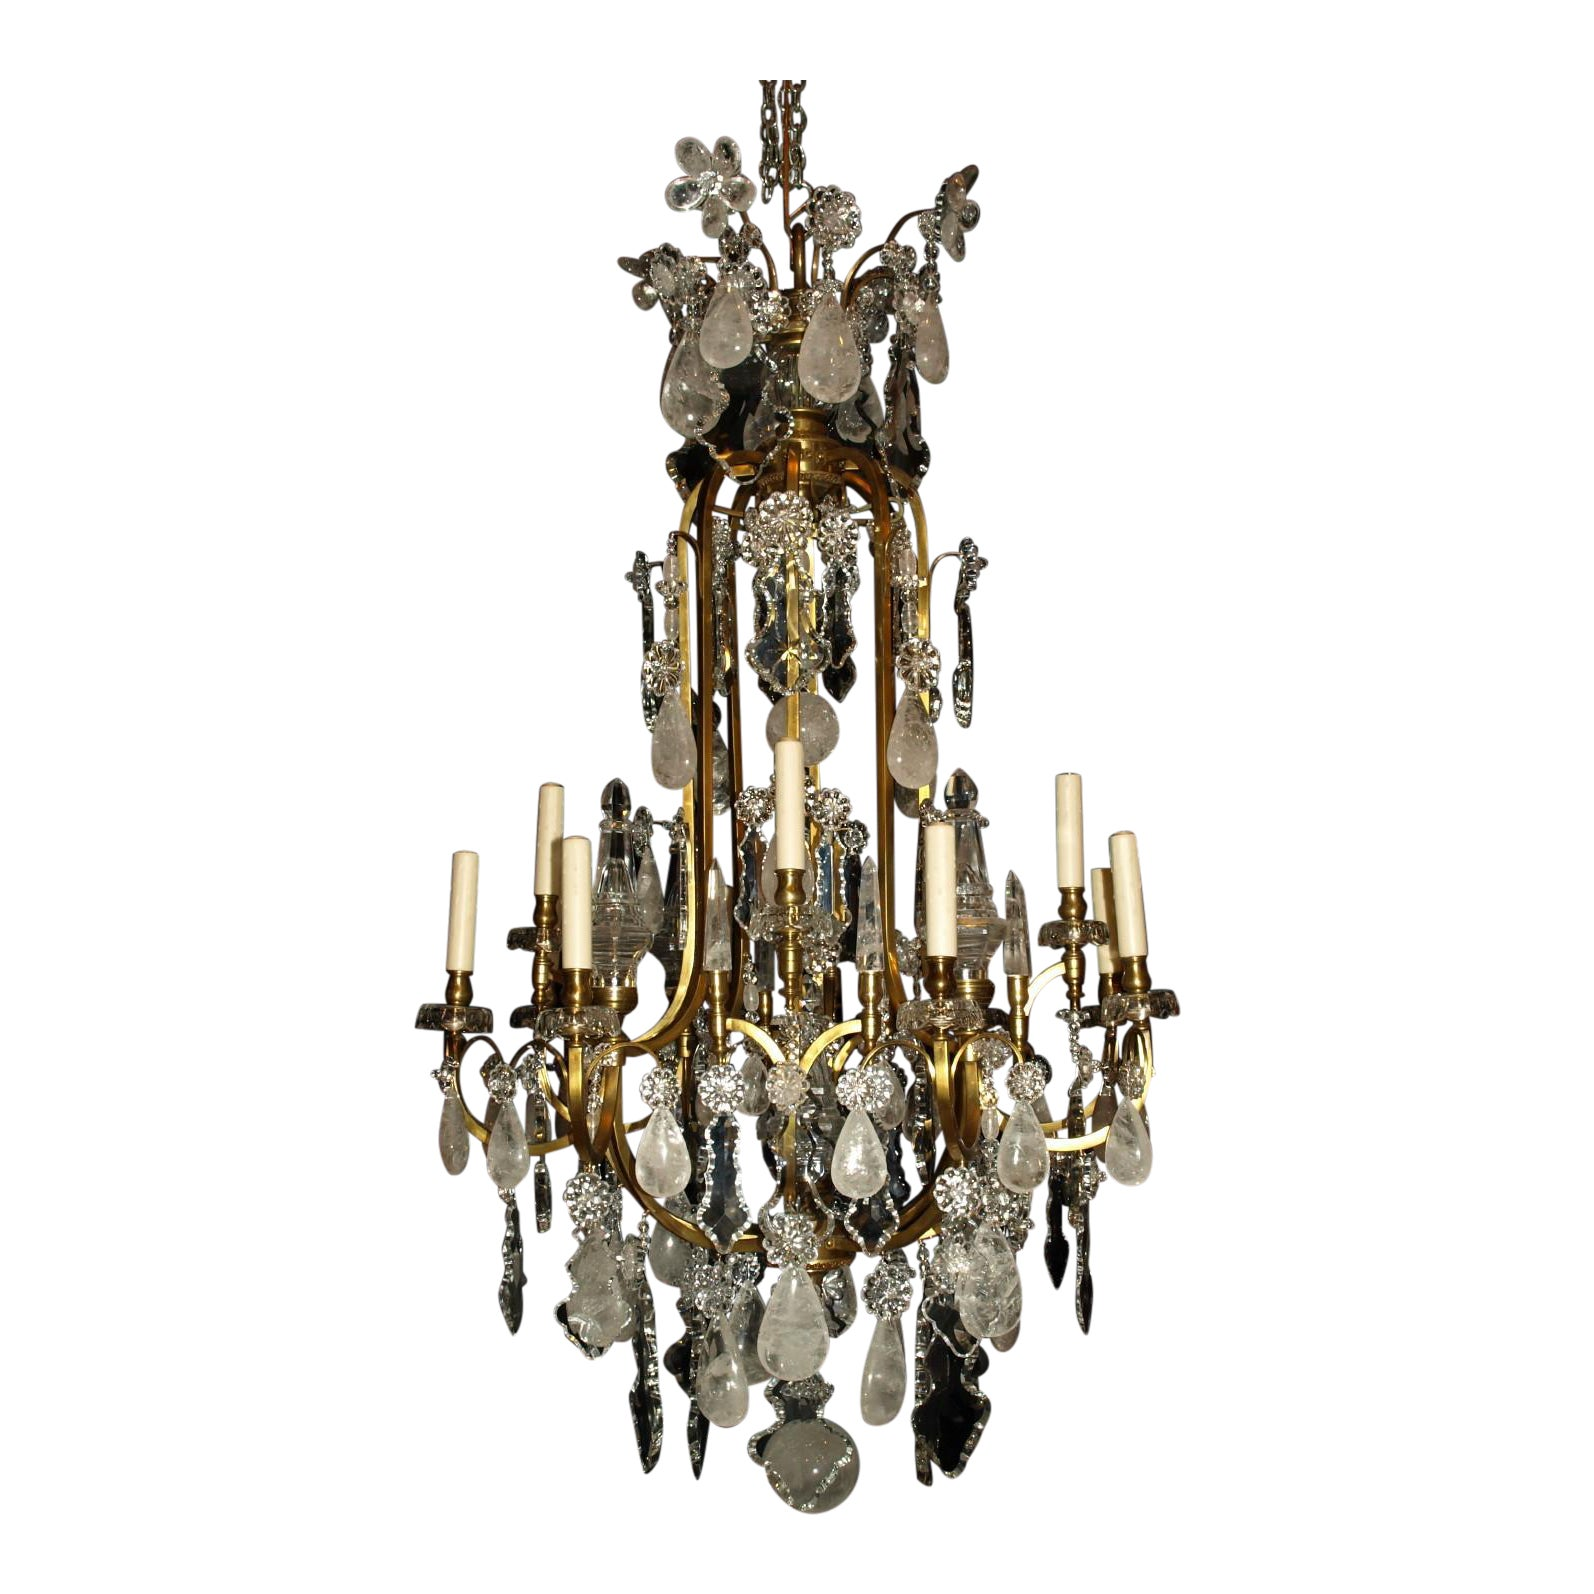 Exquisite Antique Chandelier. Rock Crystal Chandelier by Baccarat | DECASO - Exquisite Antique Chandelier. Rock Crystal Chandelier By Baccarat